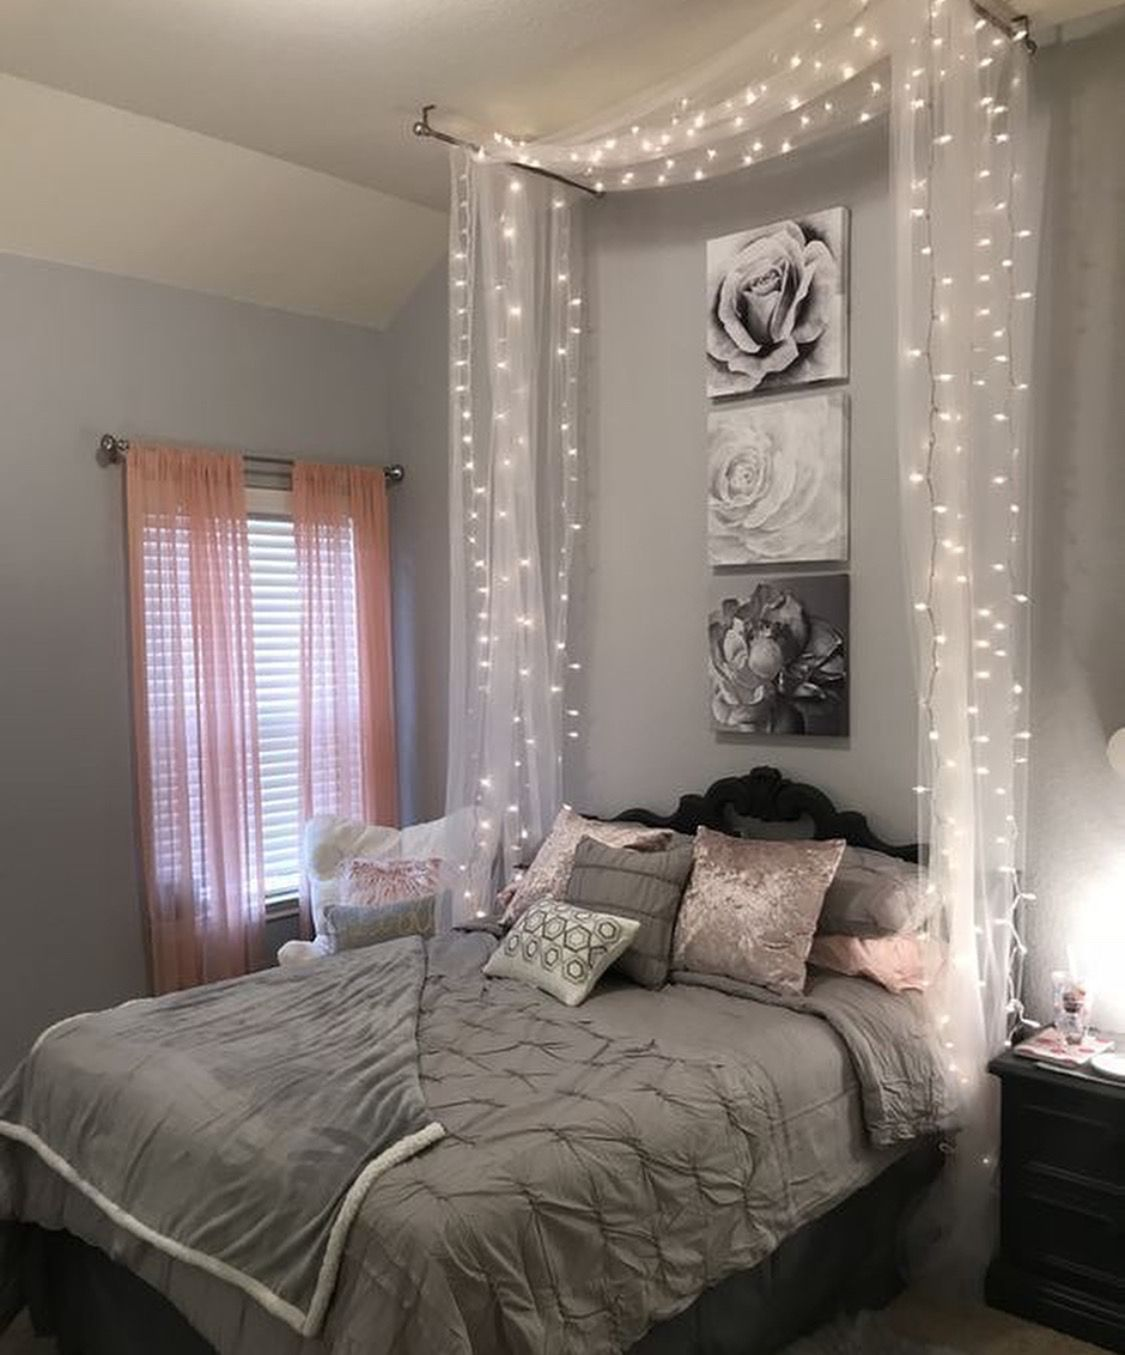 teen room design ideas modern and stylish create  filled with personal expression inspired by these whether boy or girl also small house rh pinterest